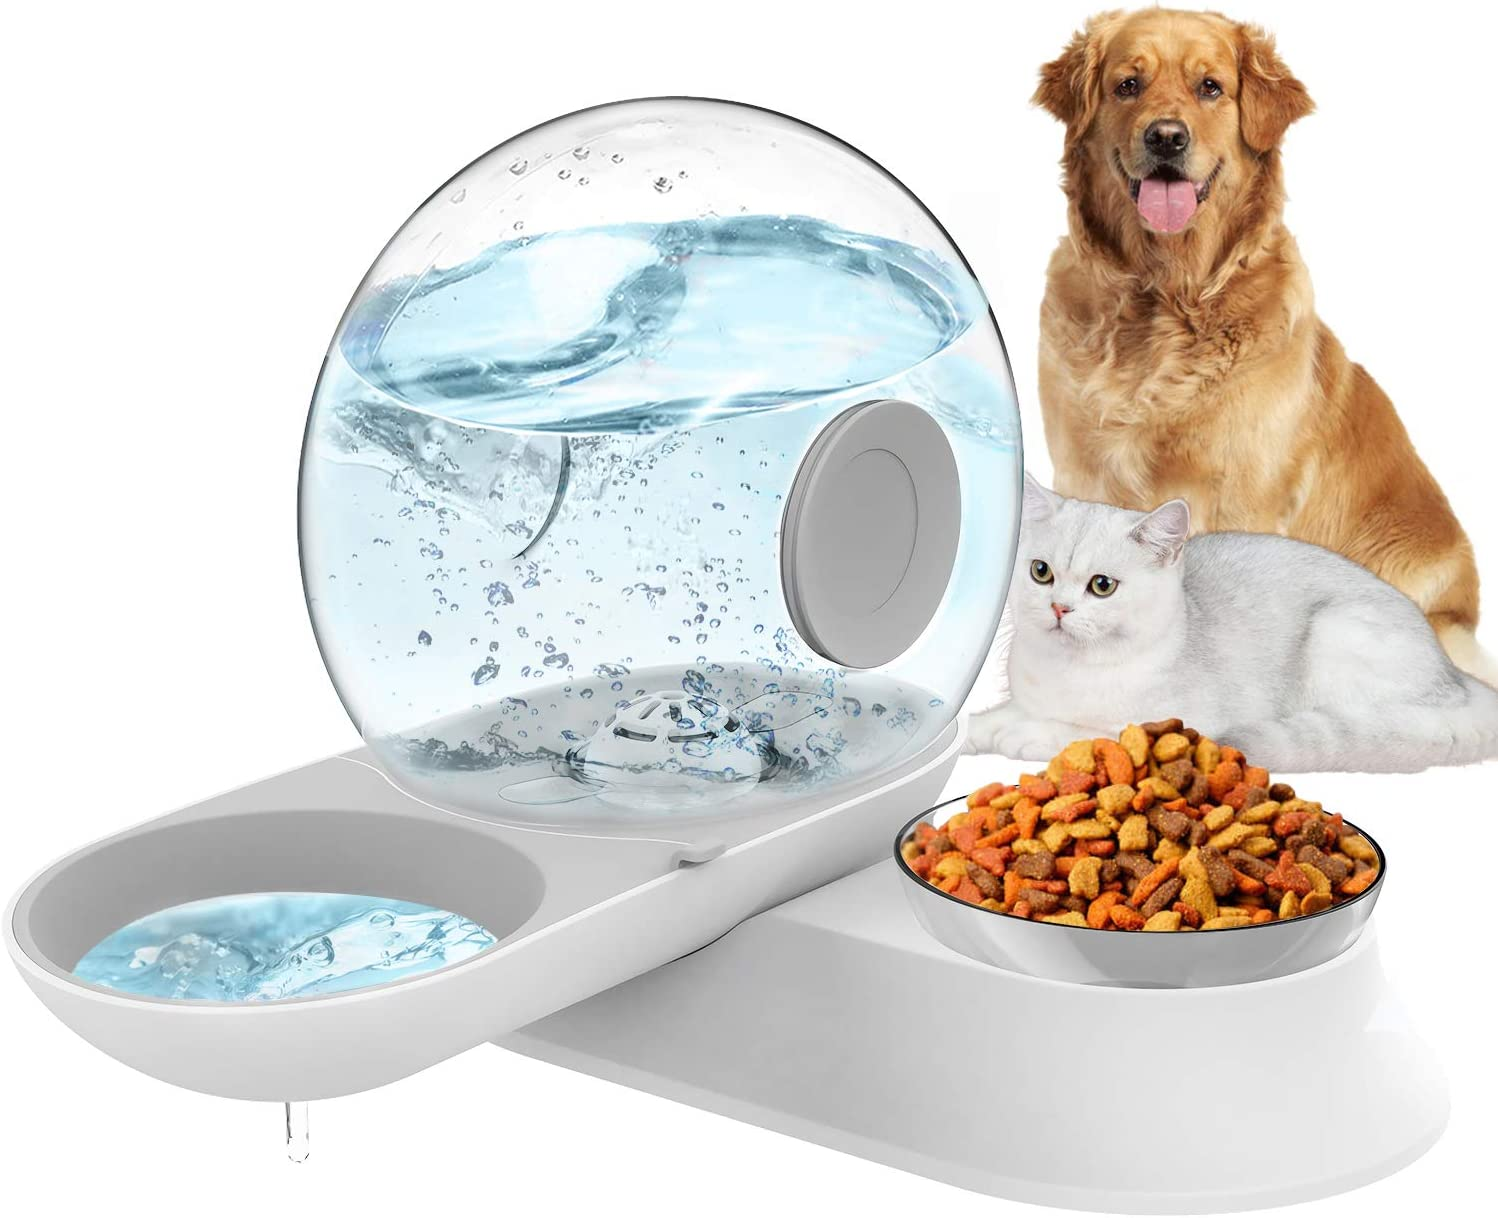 LeYoMiao 2 in 1 Pet Automatic Water Dispenser and Food Bowl Set, Cat Dog Feeder Bowl Gravity Waterer, No-Spill Snail Shape 2.8L Water Foutains for Cats & Small Dogs (Gray)